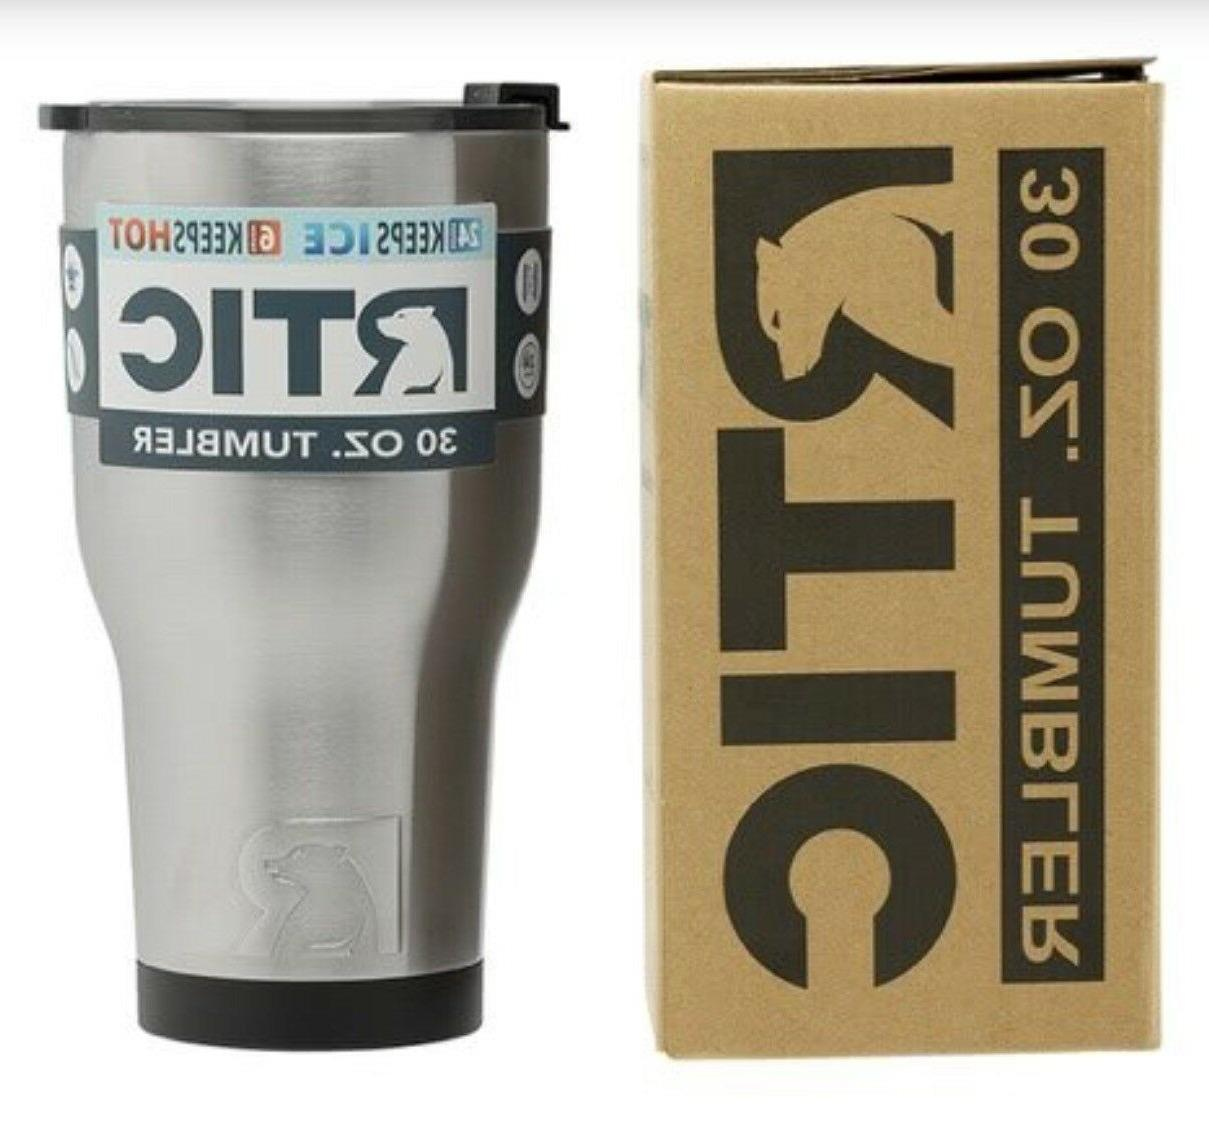 RTIC 30oz Steel Tumbler with 2019 lid